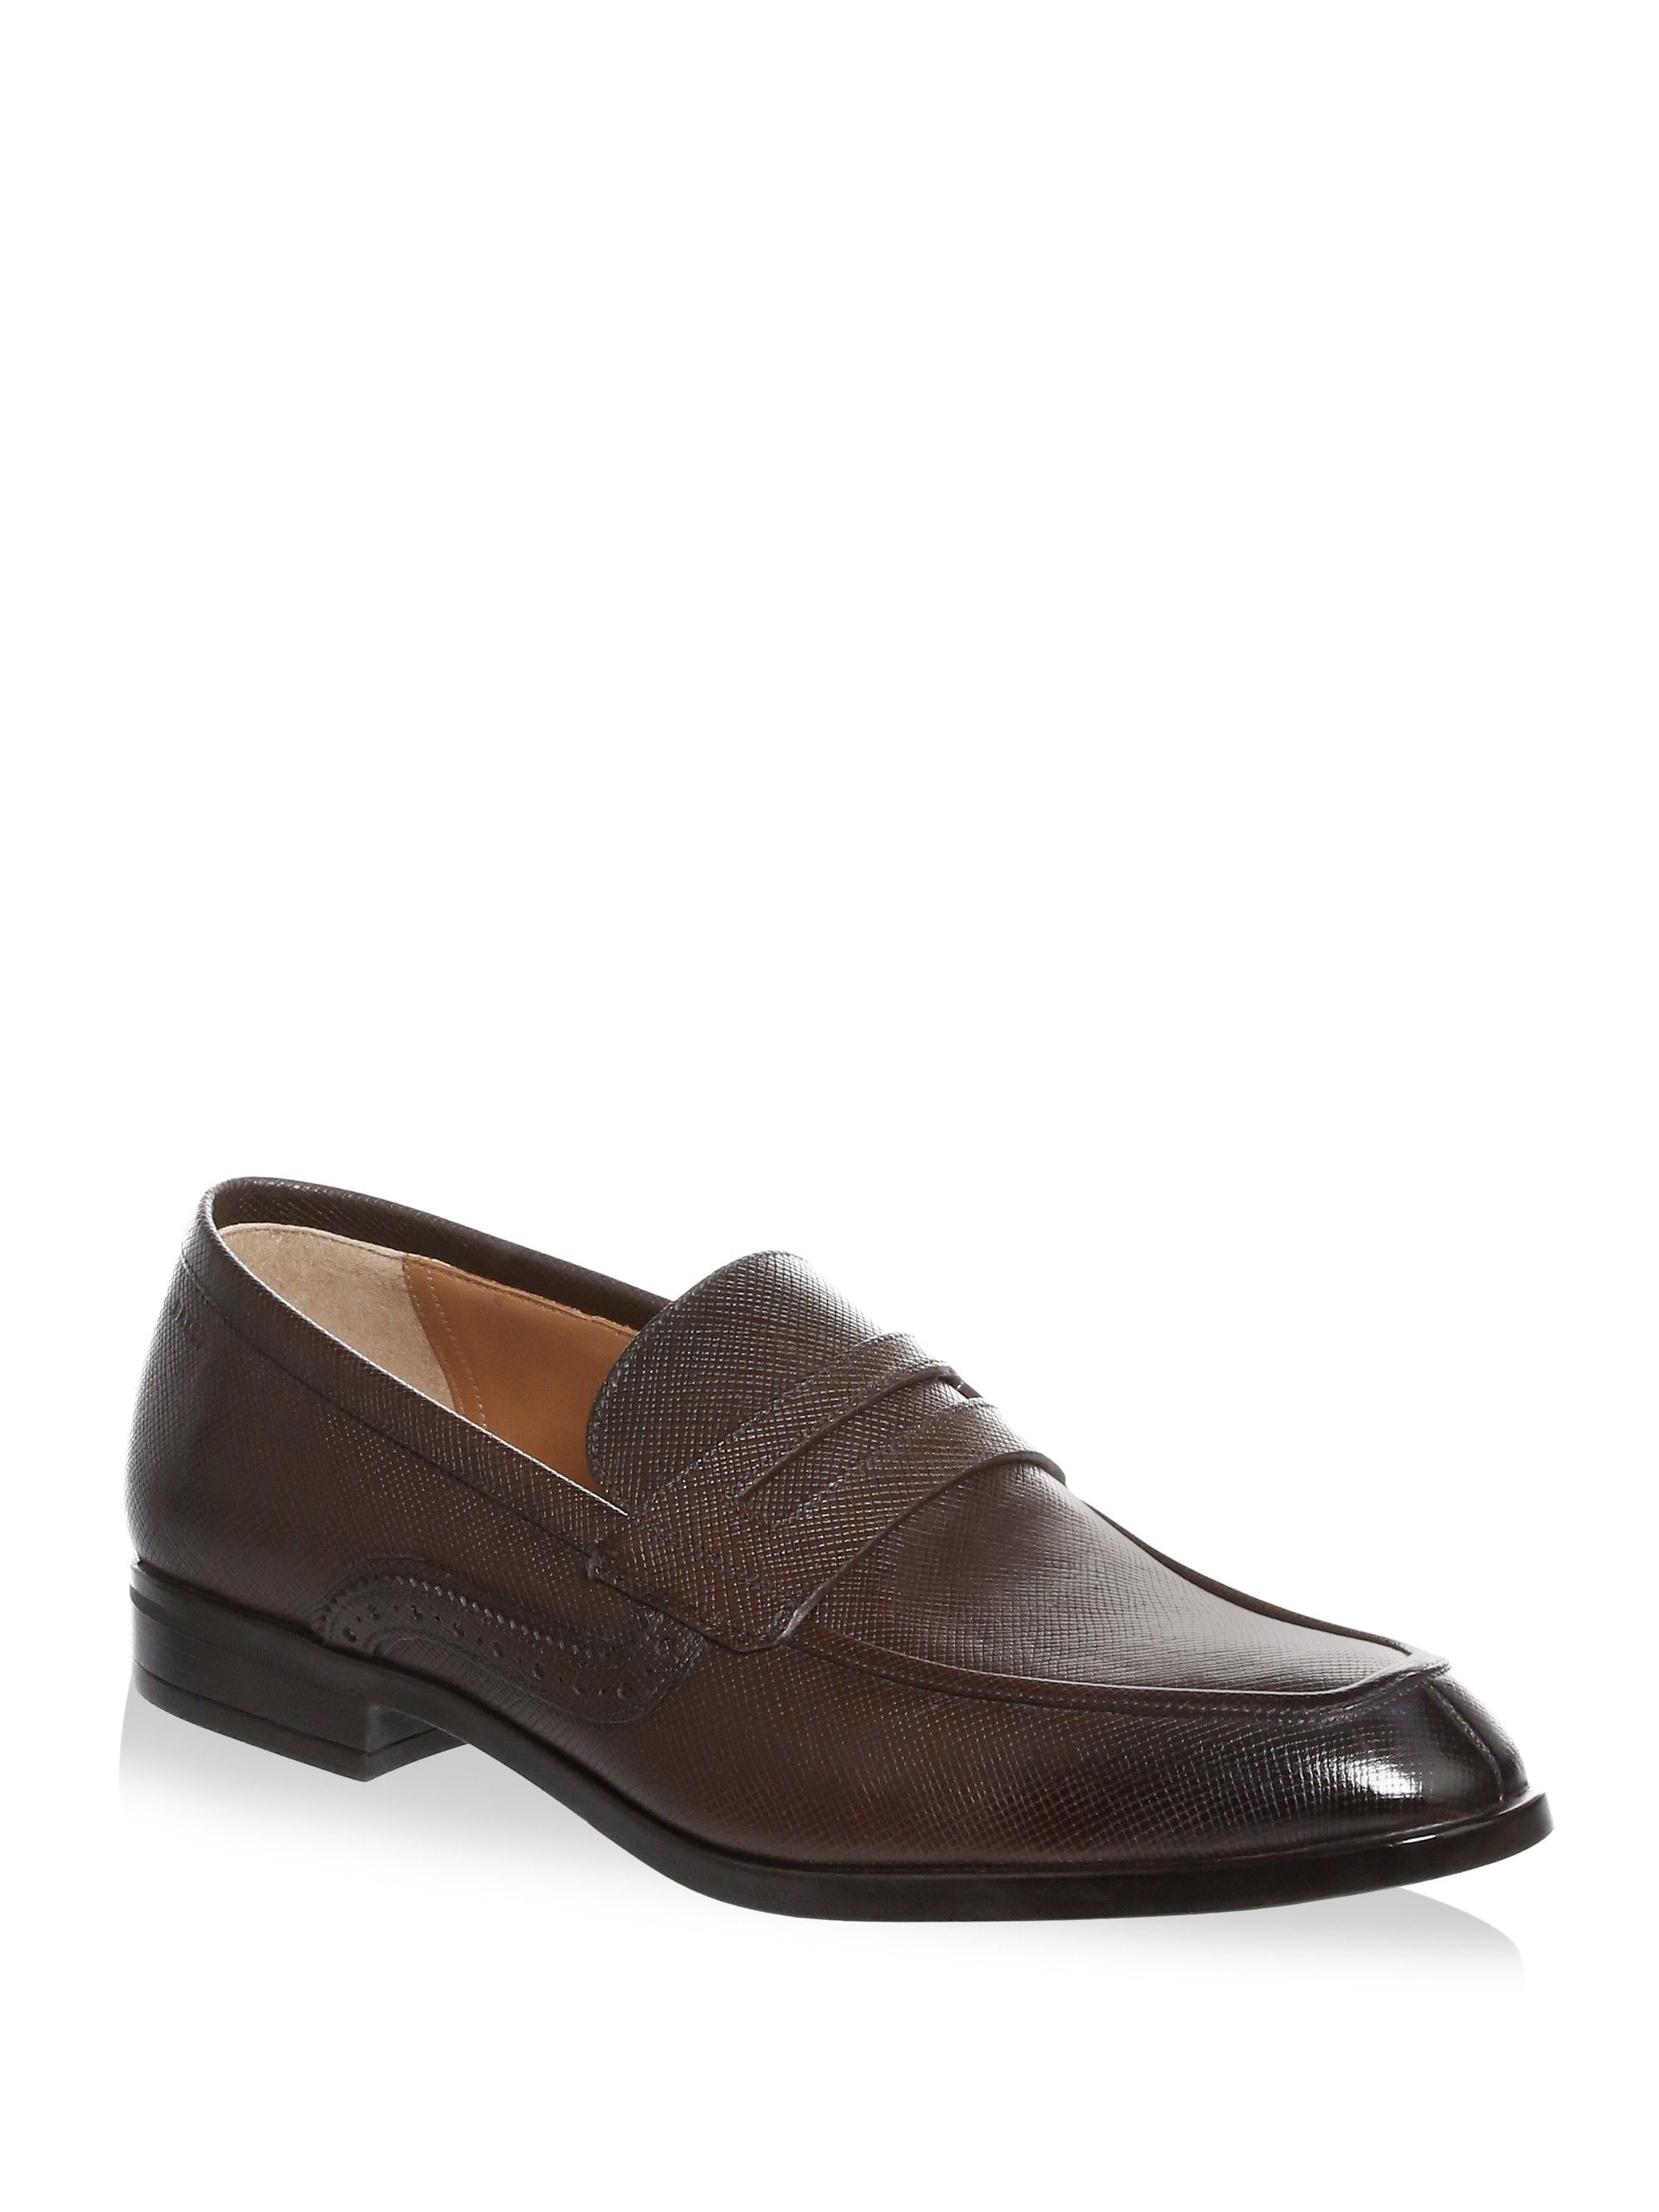 Bally Suit Shoes 011